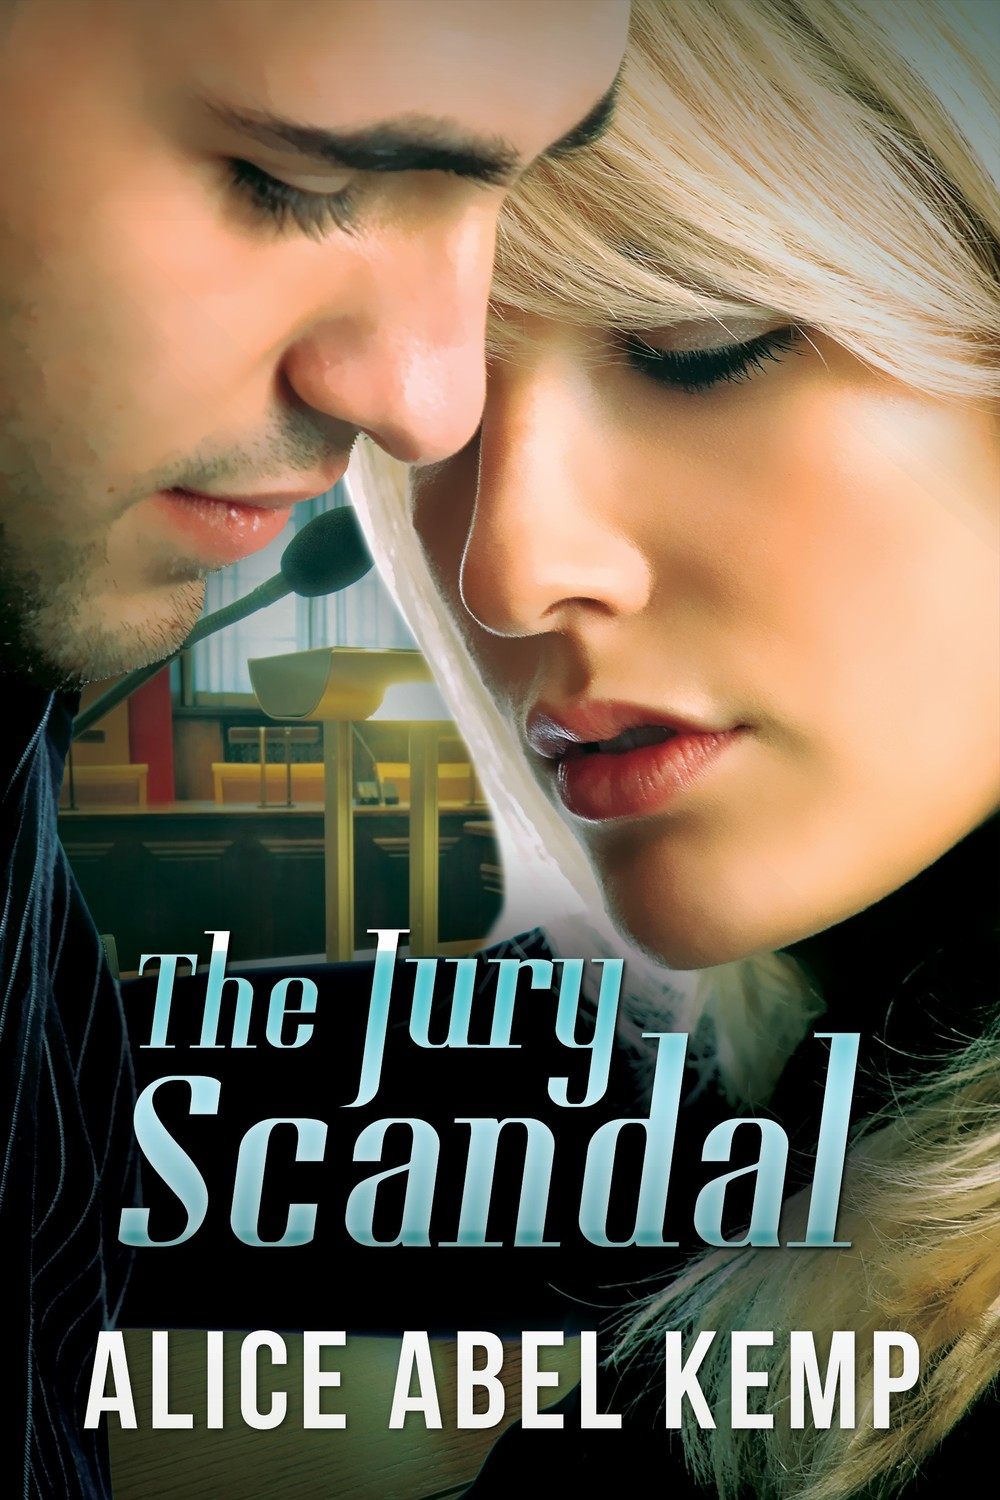 The Jury Scandal by Alice Abel Kemp on Sophia Kimble